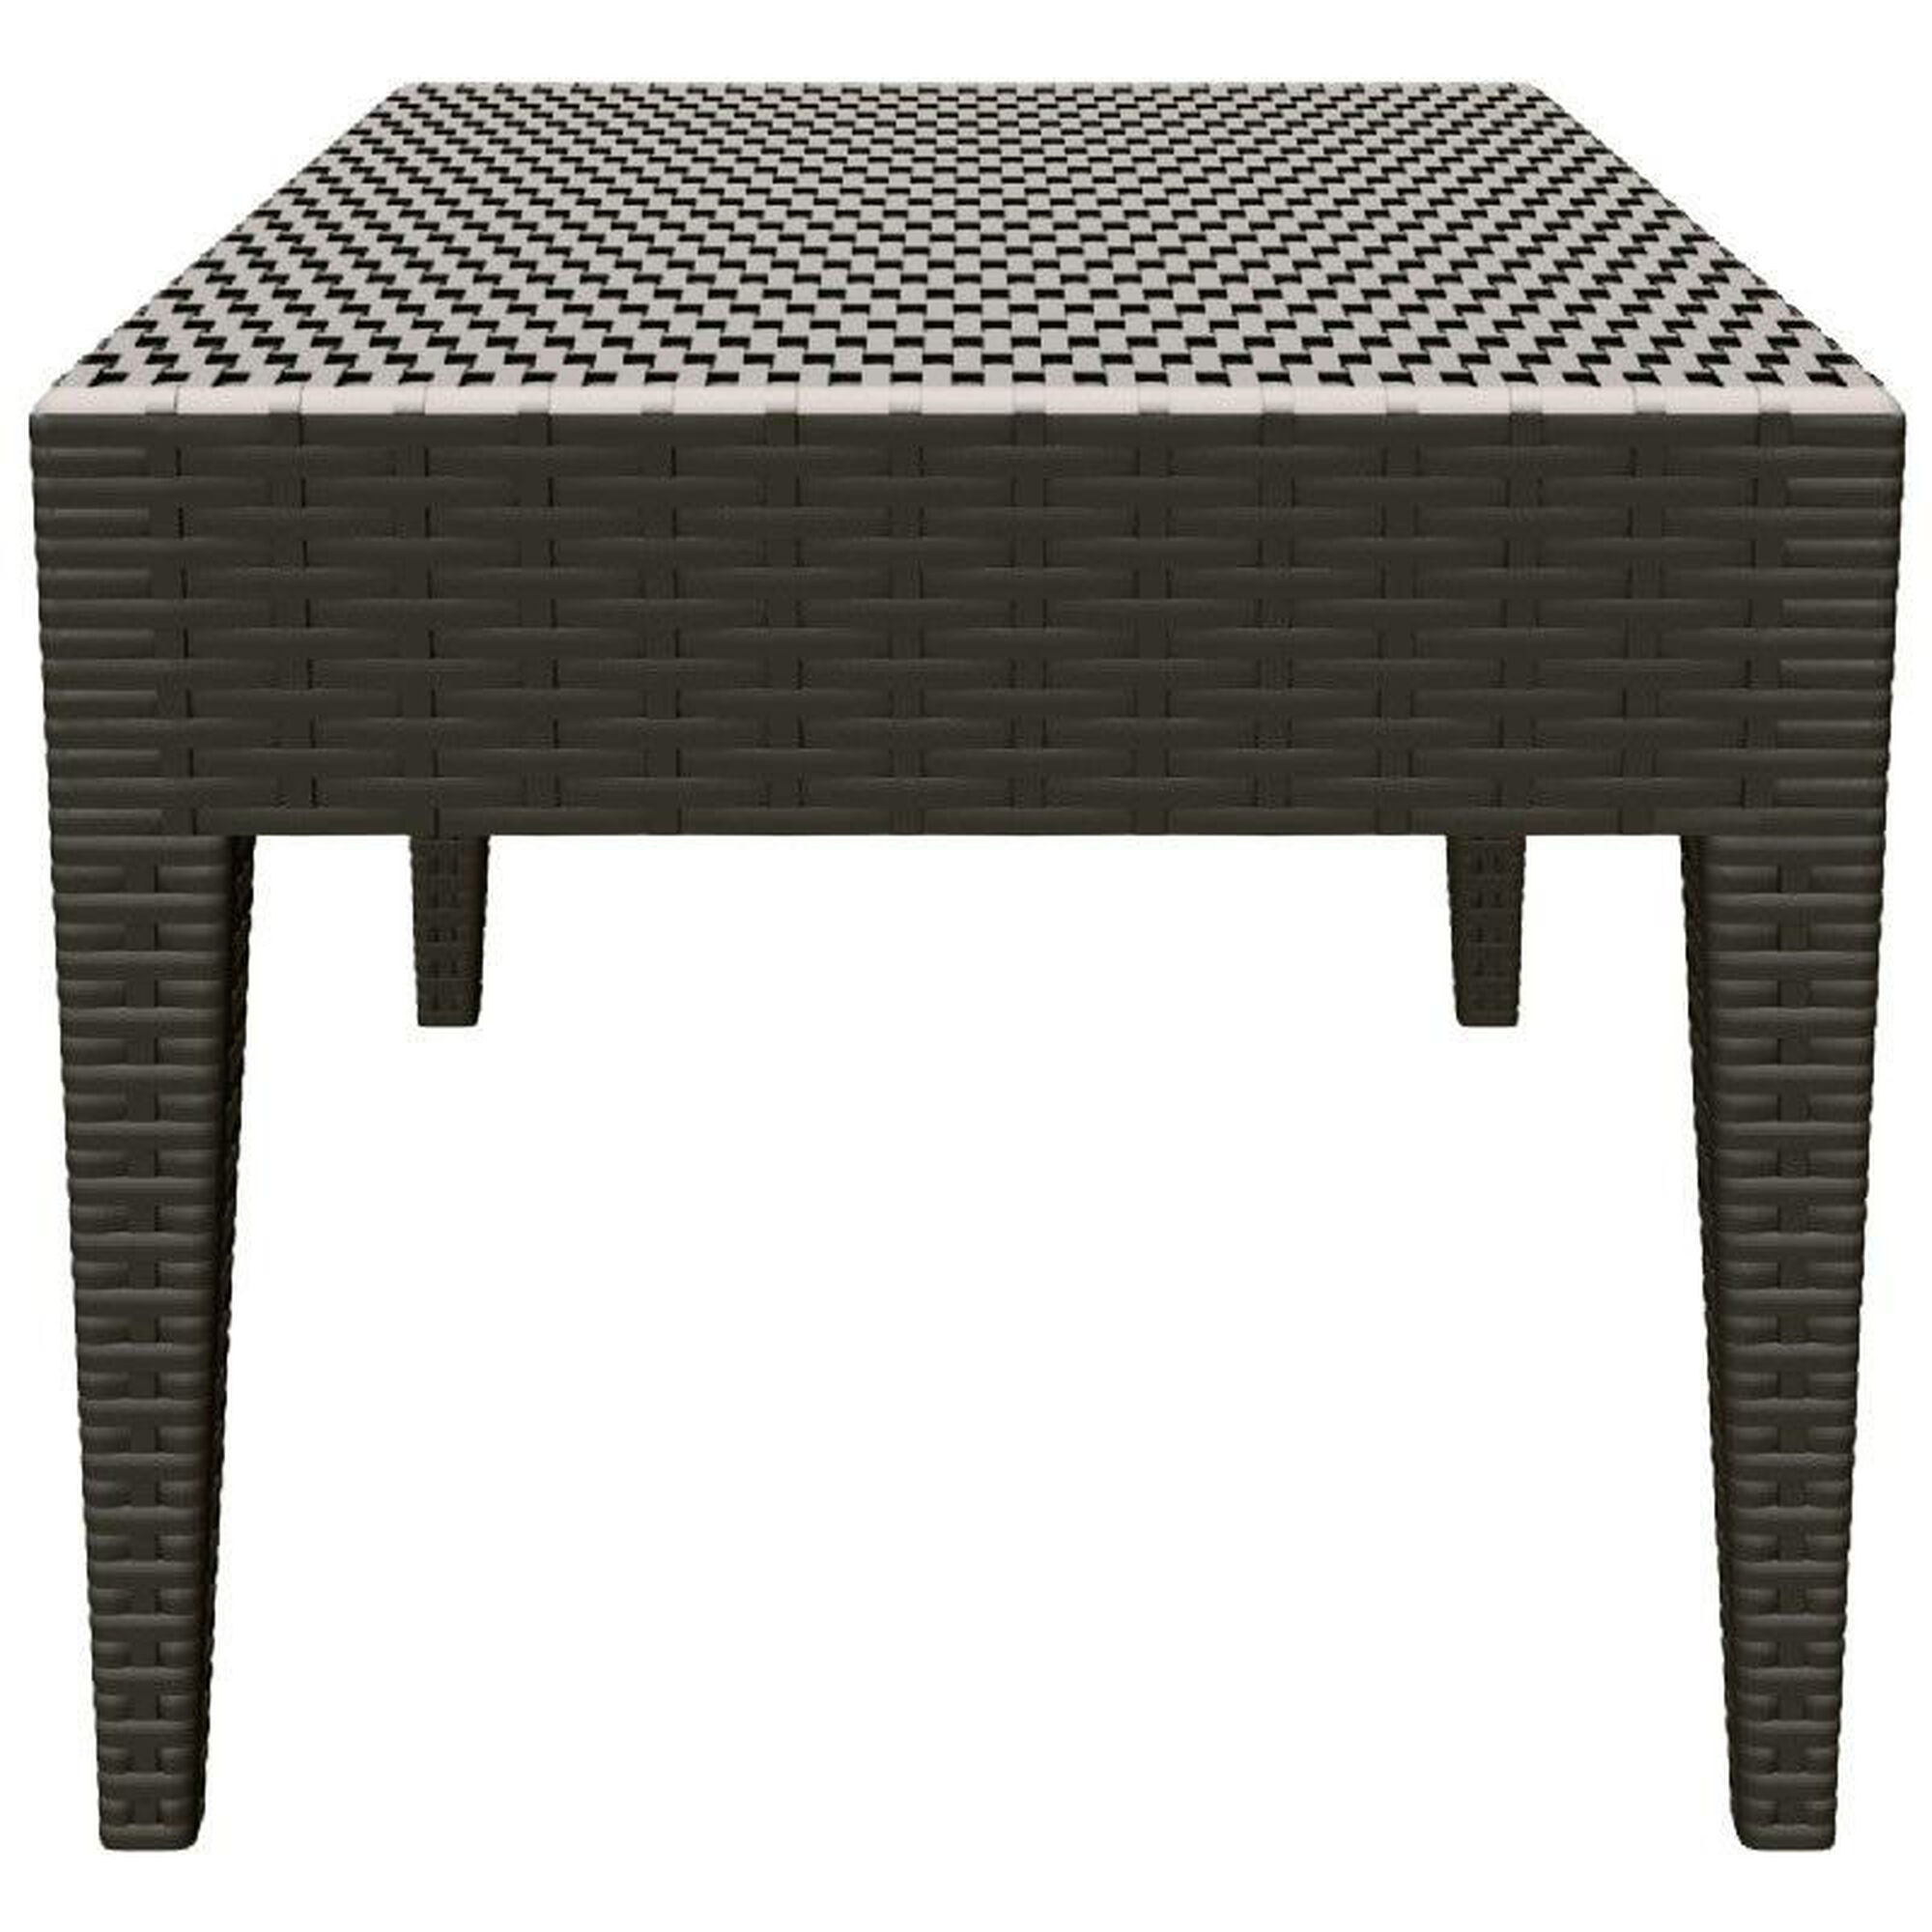 Images our miami outdoor wickerlook resin coffee table